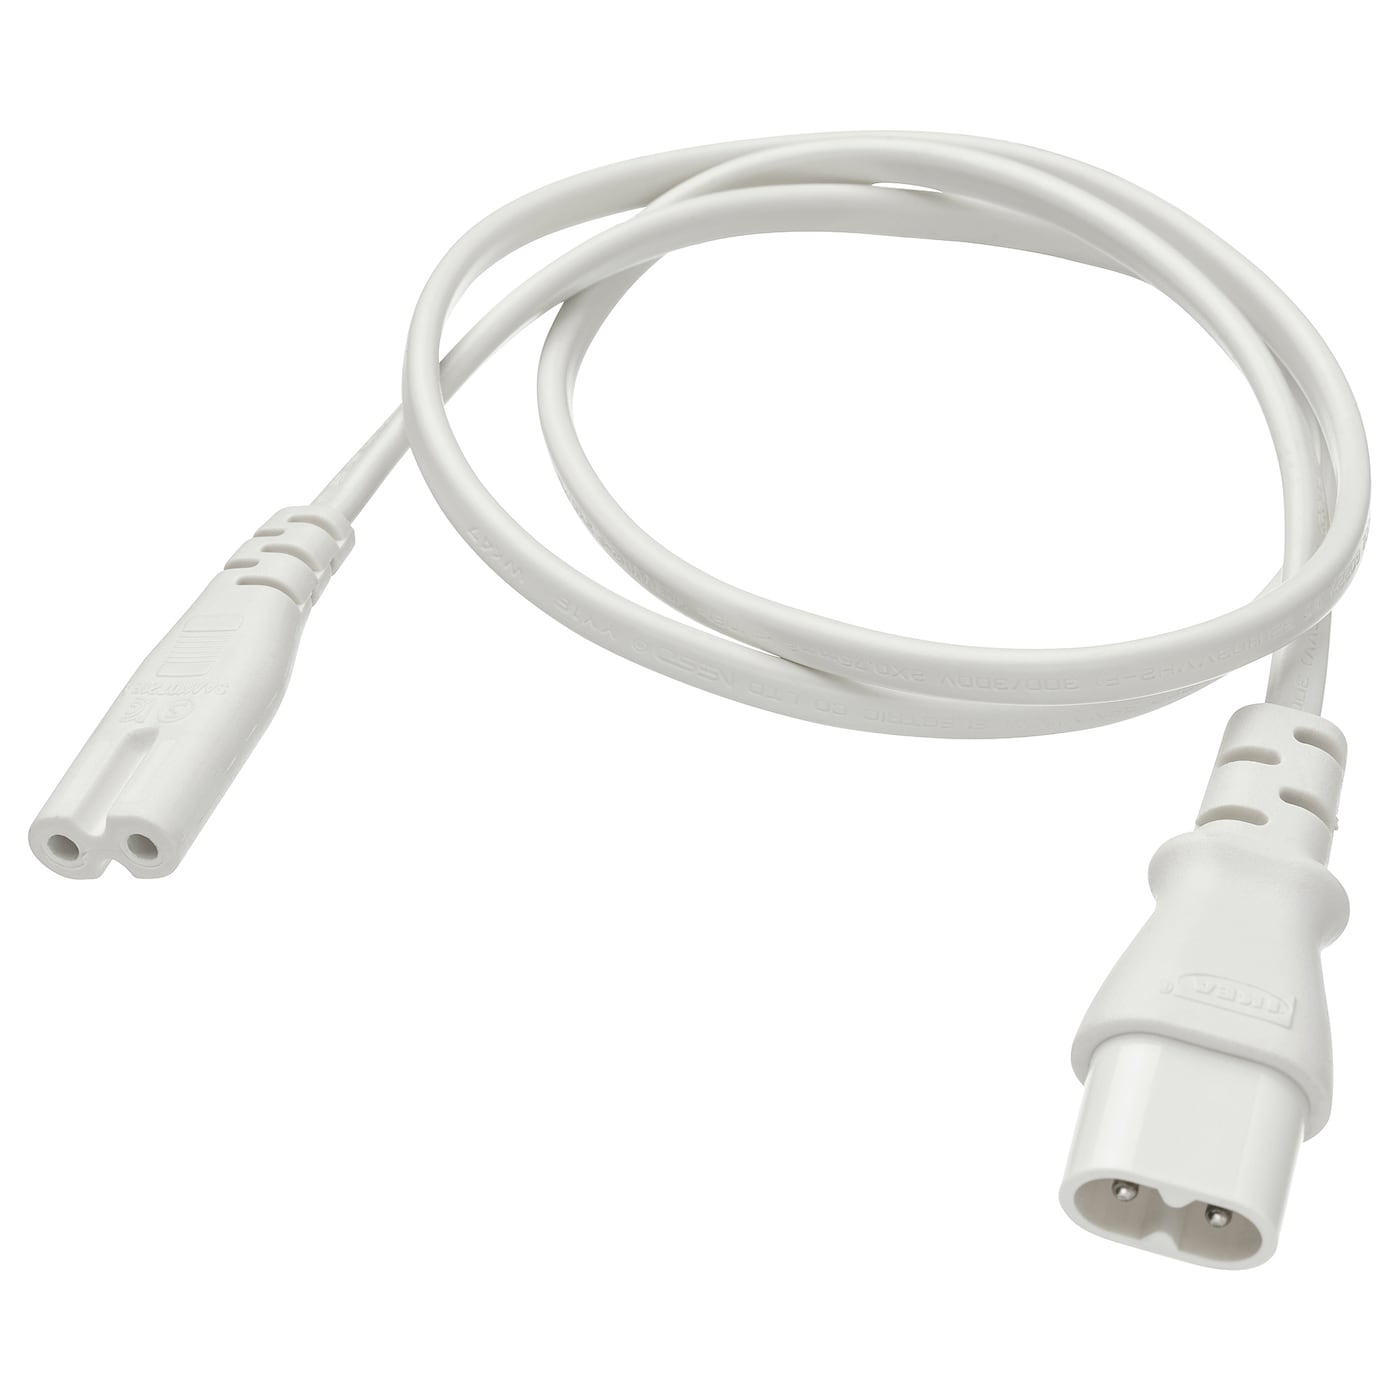 IKEA FÖRNIMMA intermediate connection cord